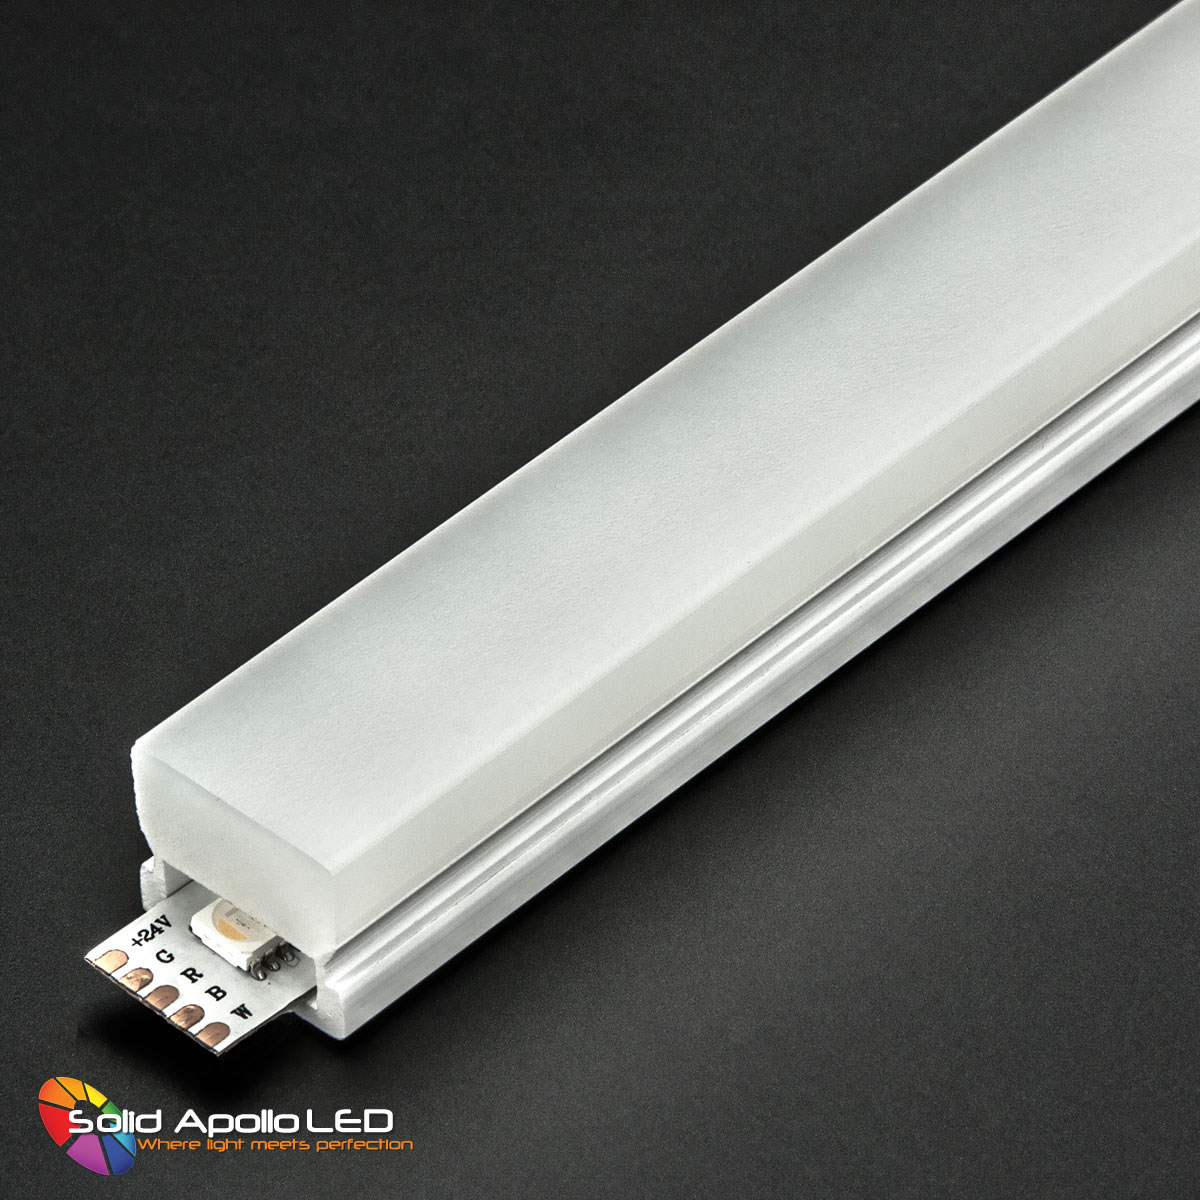 Solid Apollo LED Introduces 2 New Lines of Linear LED